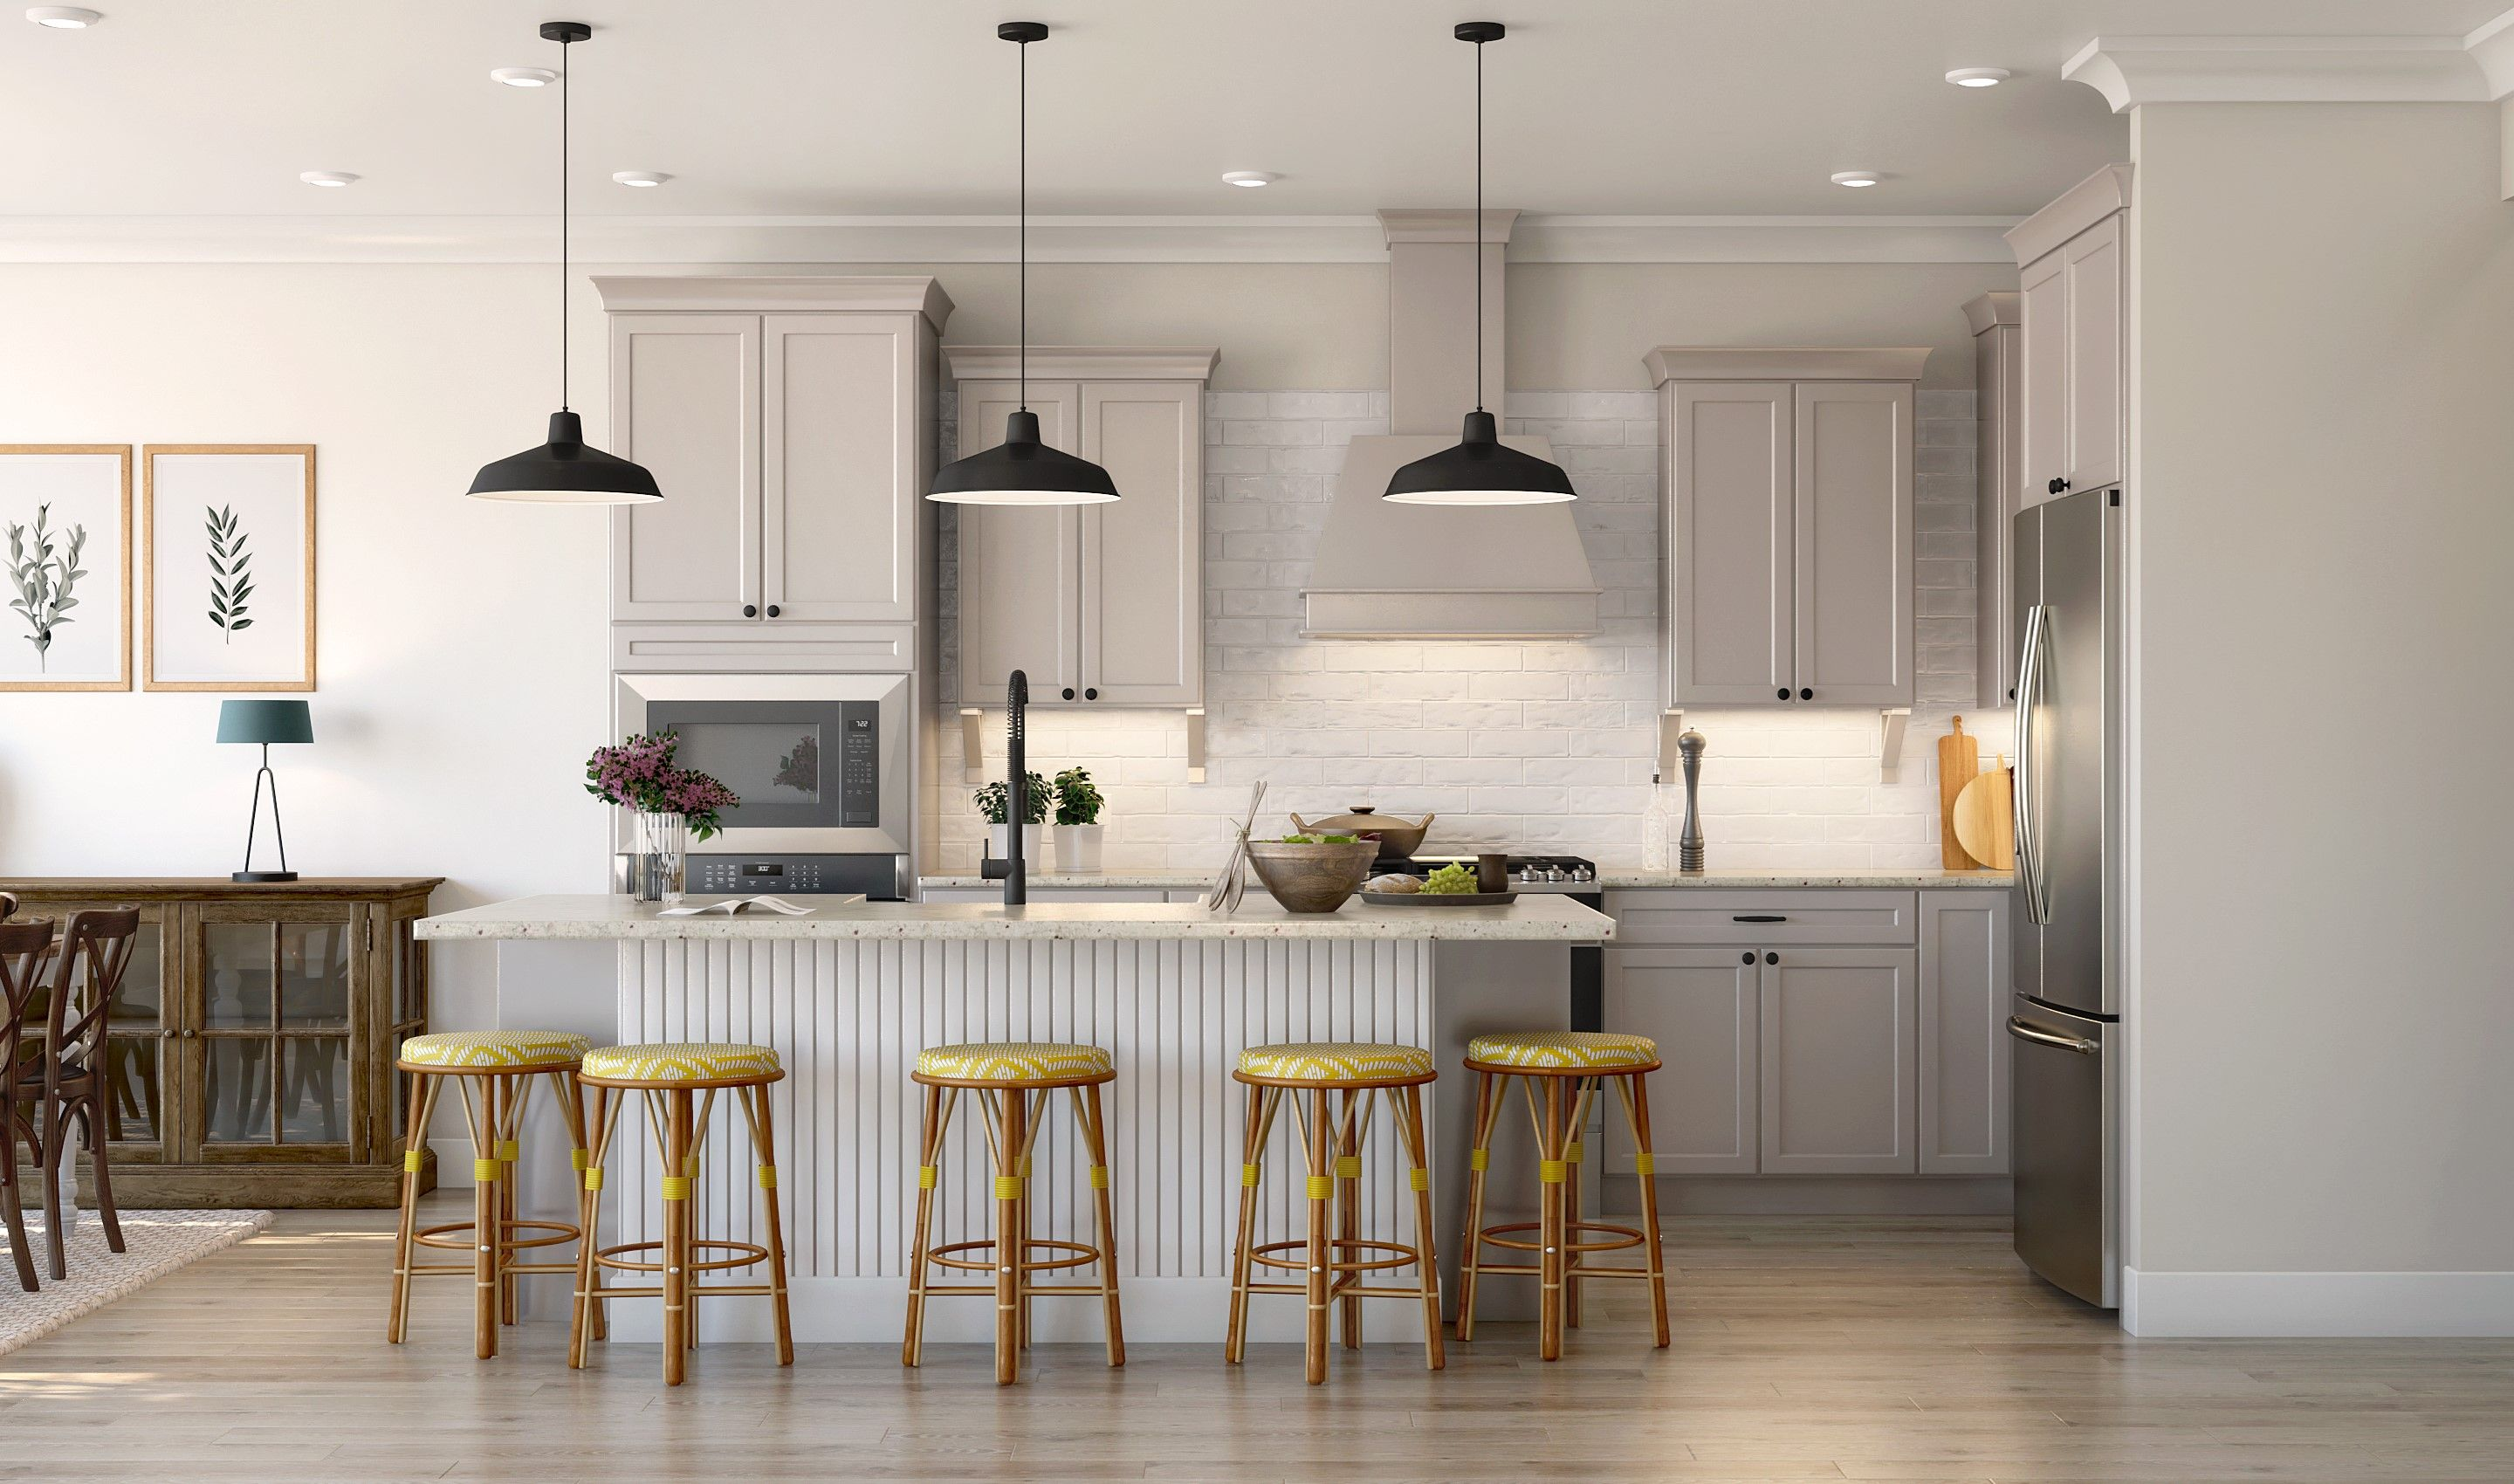 Kitchen featured in the Haverford By K. Hovnanian® Homes in Bergen County, NJ